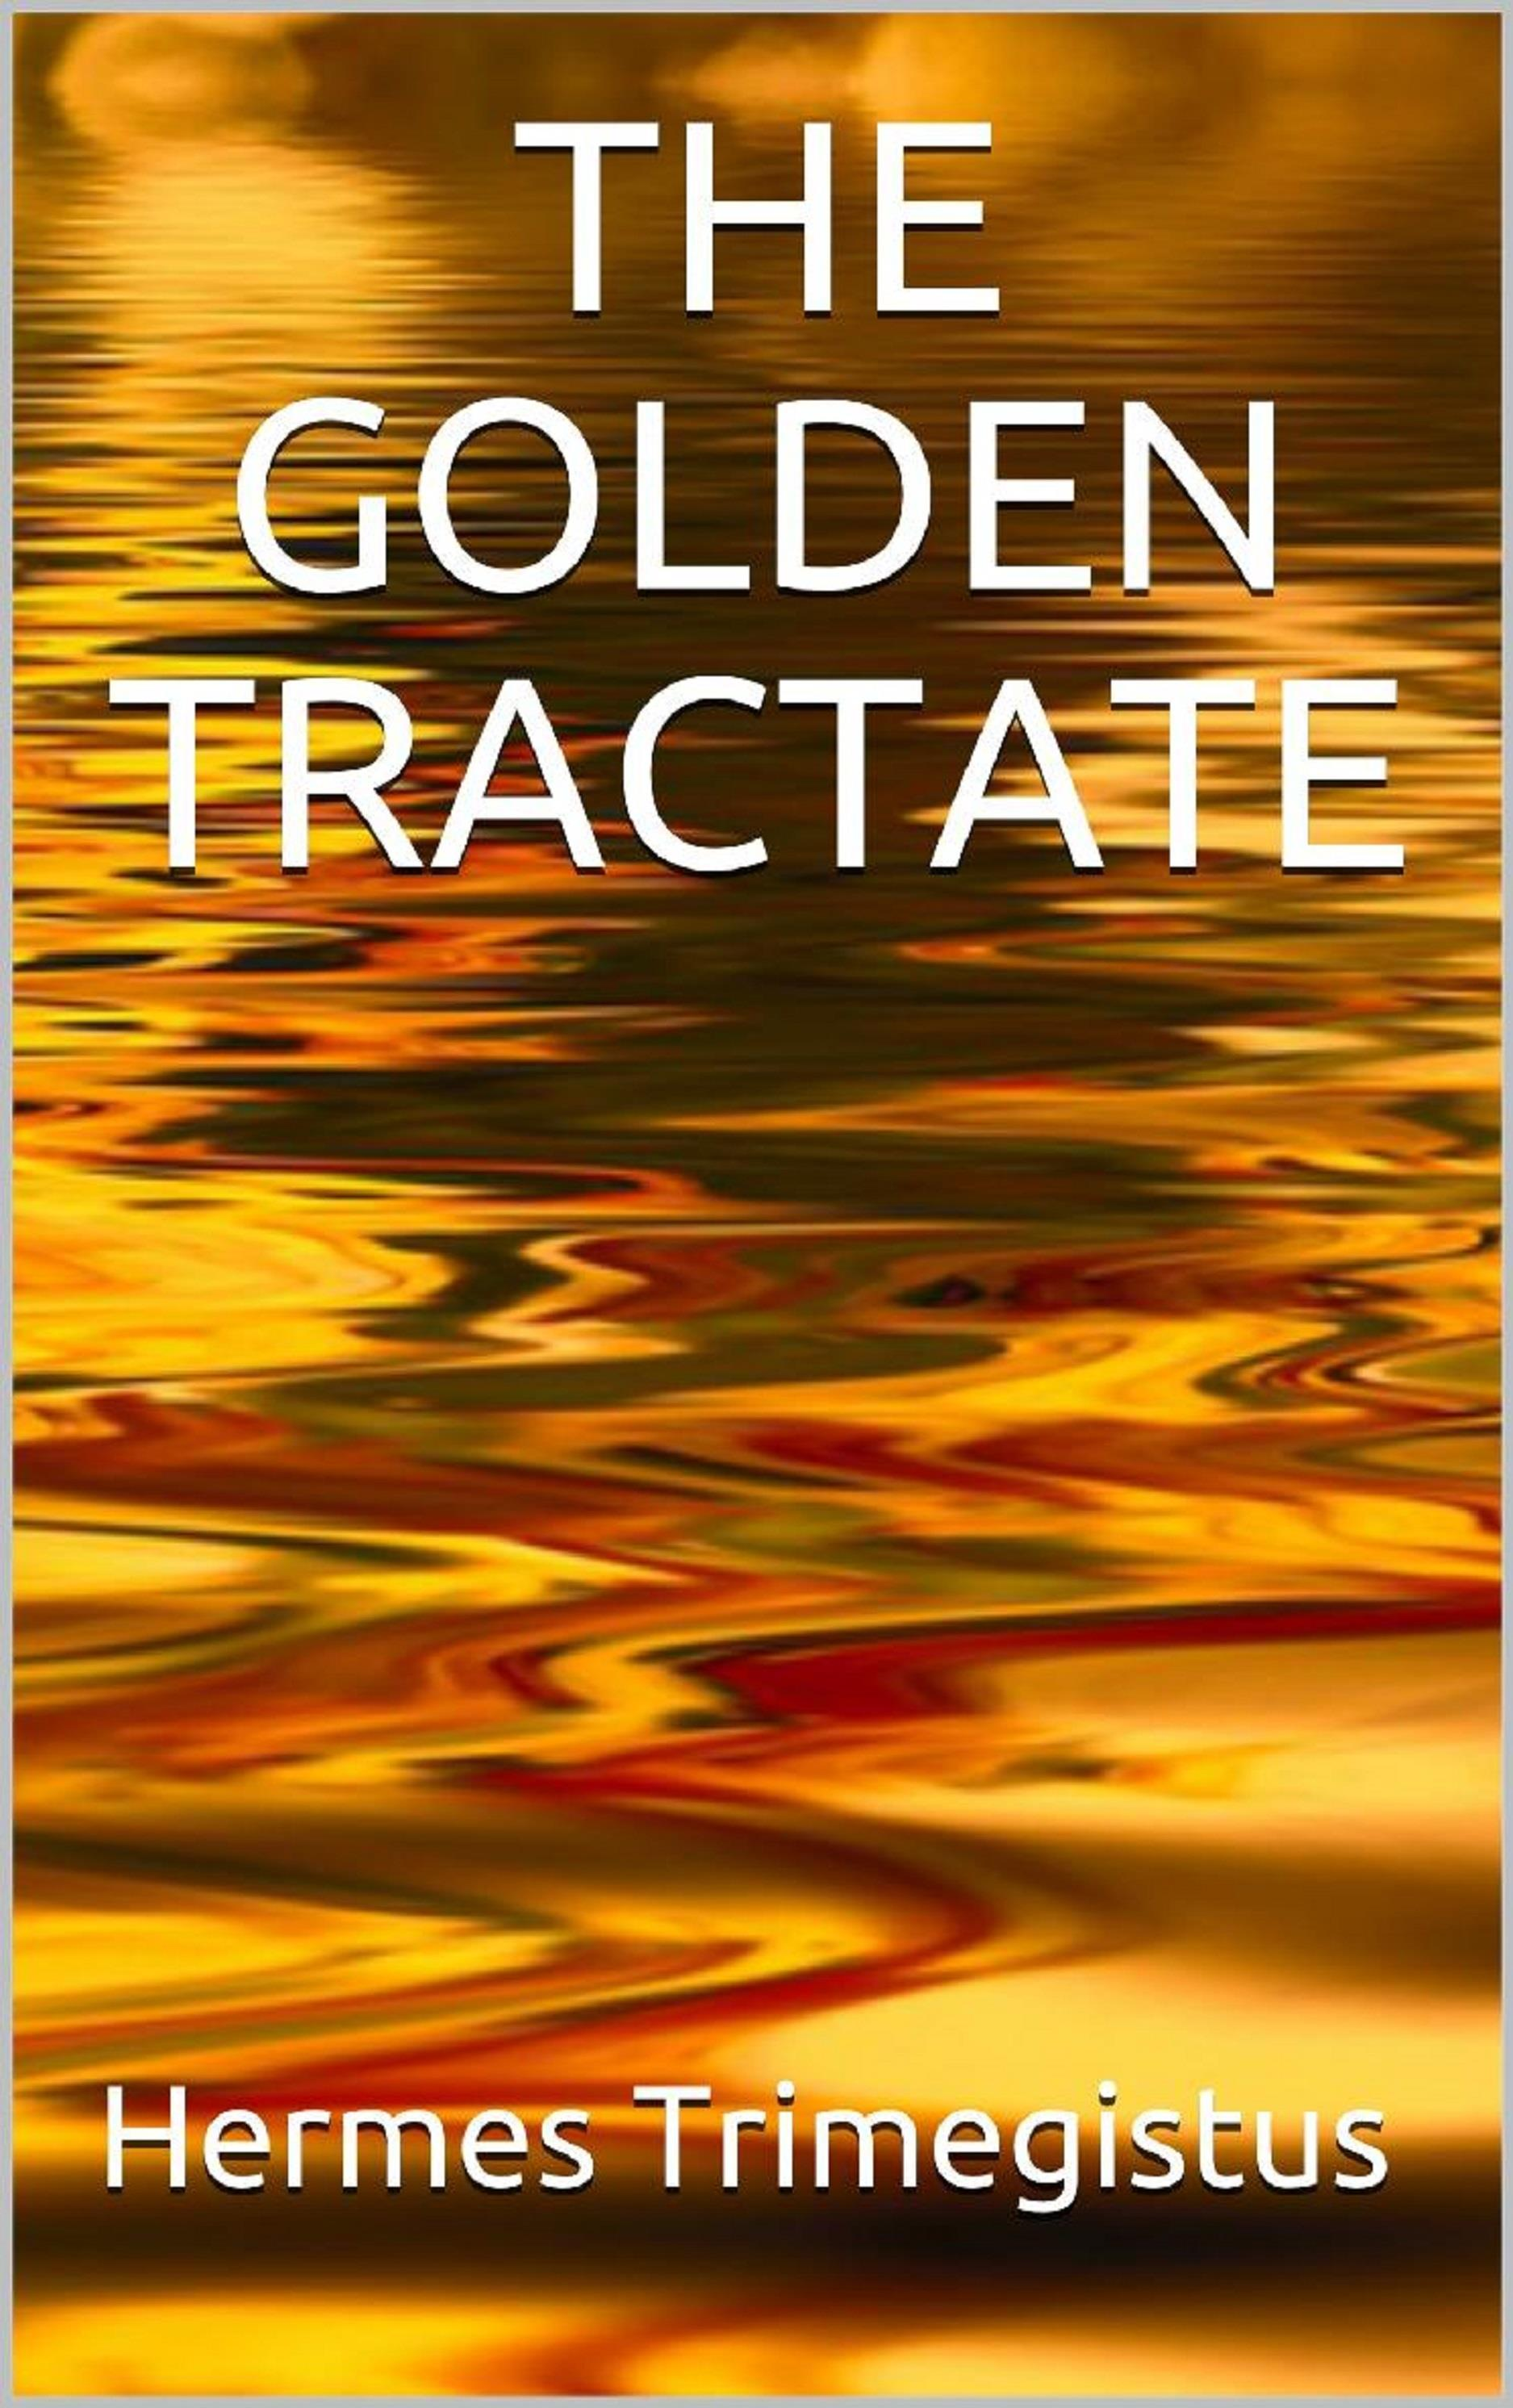 The Golden Tractate